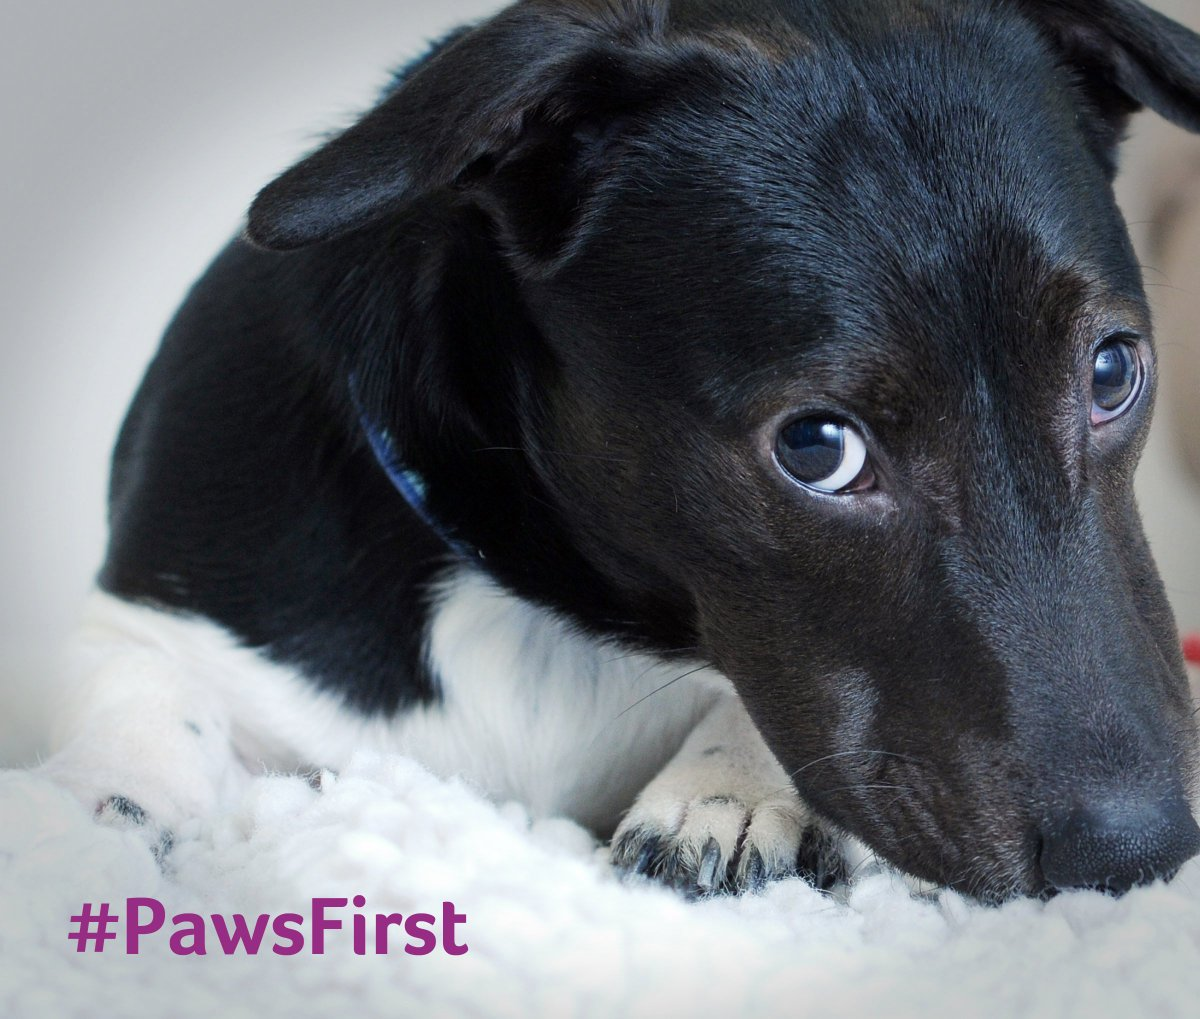 Pets shouldn't be bought on a whim. Support #PawsFirst to stop millions of pets suffering: https://t.co/TTAaLMv7Np https://t.co/I8zX2HAH4v